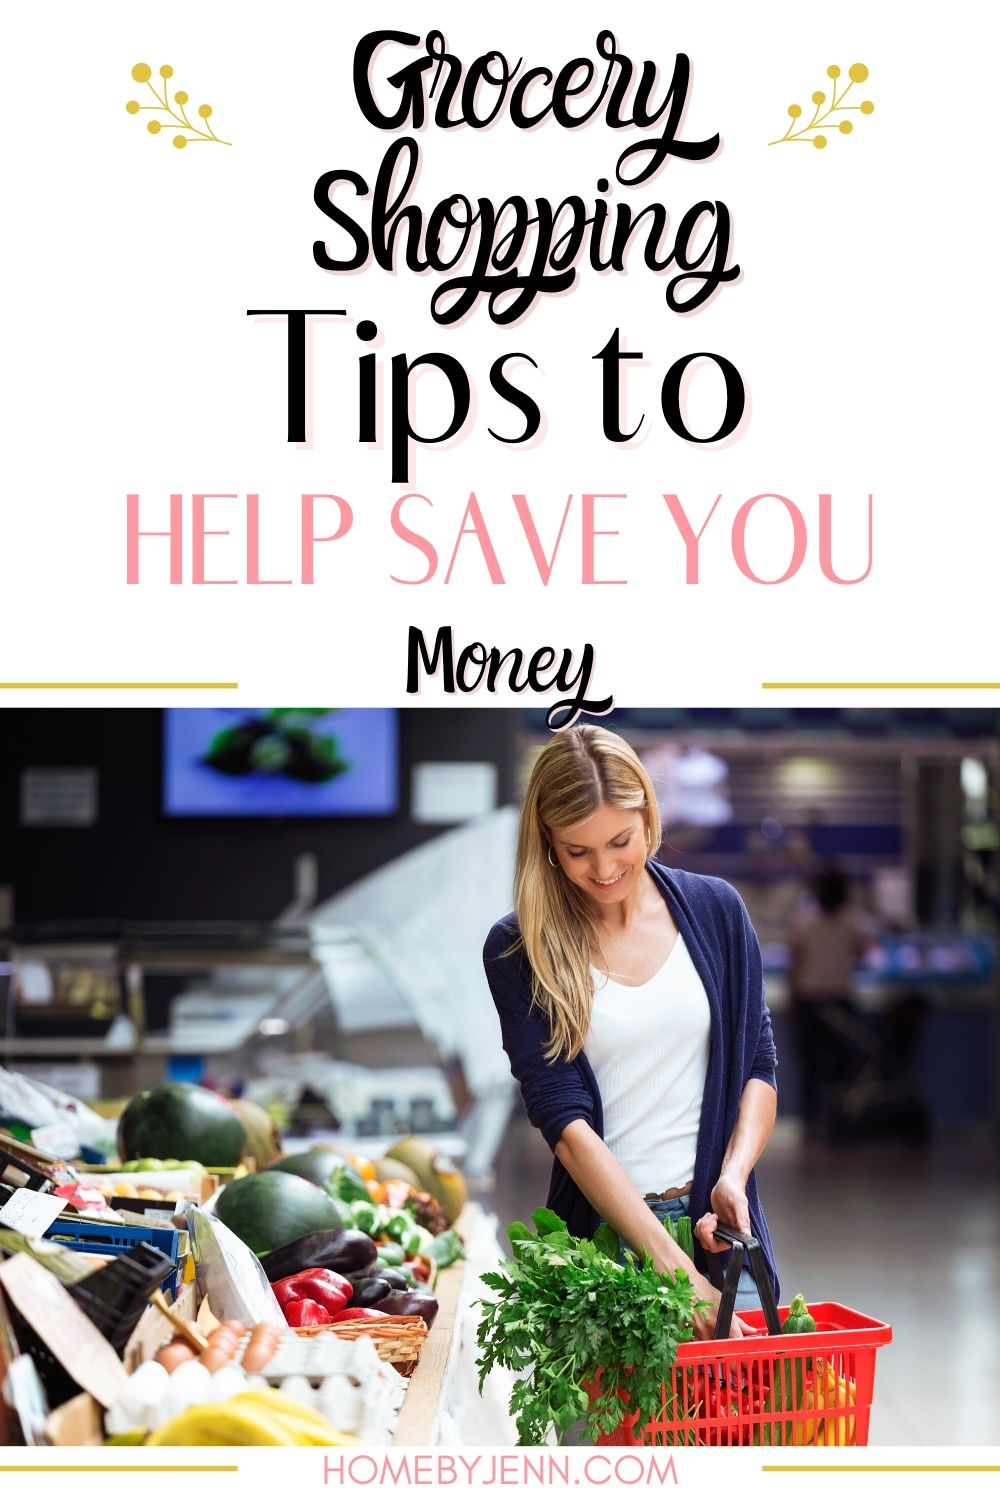 The reality is that grocery prices are not going down. In this post, you'll learn some grocery shopping tips that will save you money on your grocery bill. #groceries #cutthebill #budget #savingmoney #shoppingtips #groceryshoppingtips #save via @homebyjenn